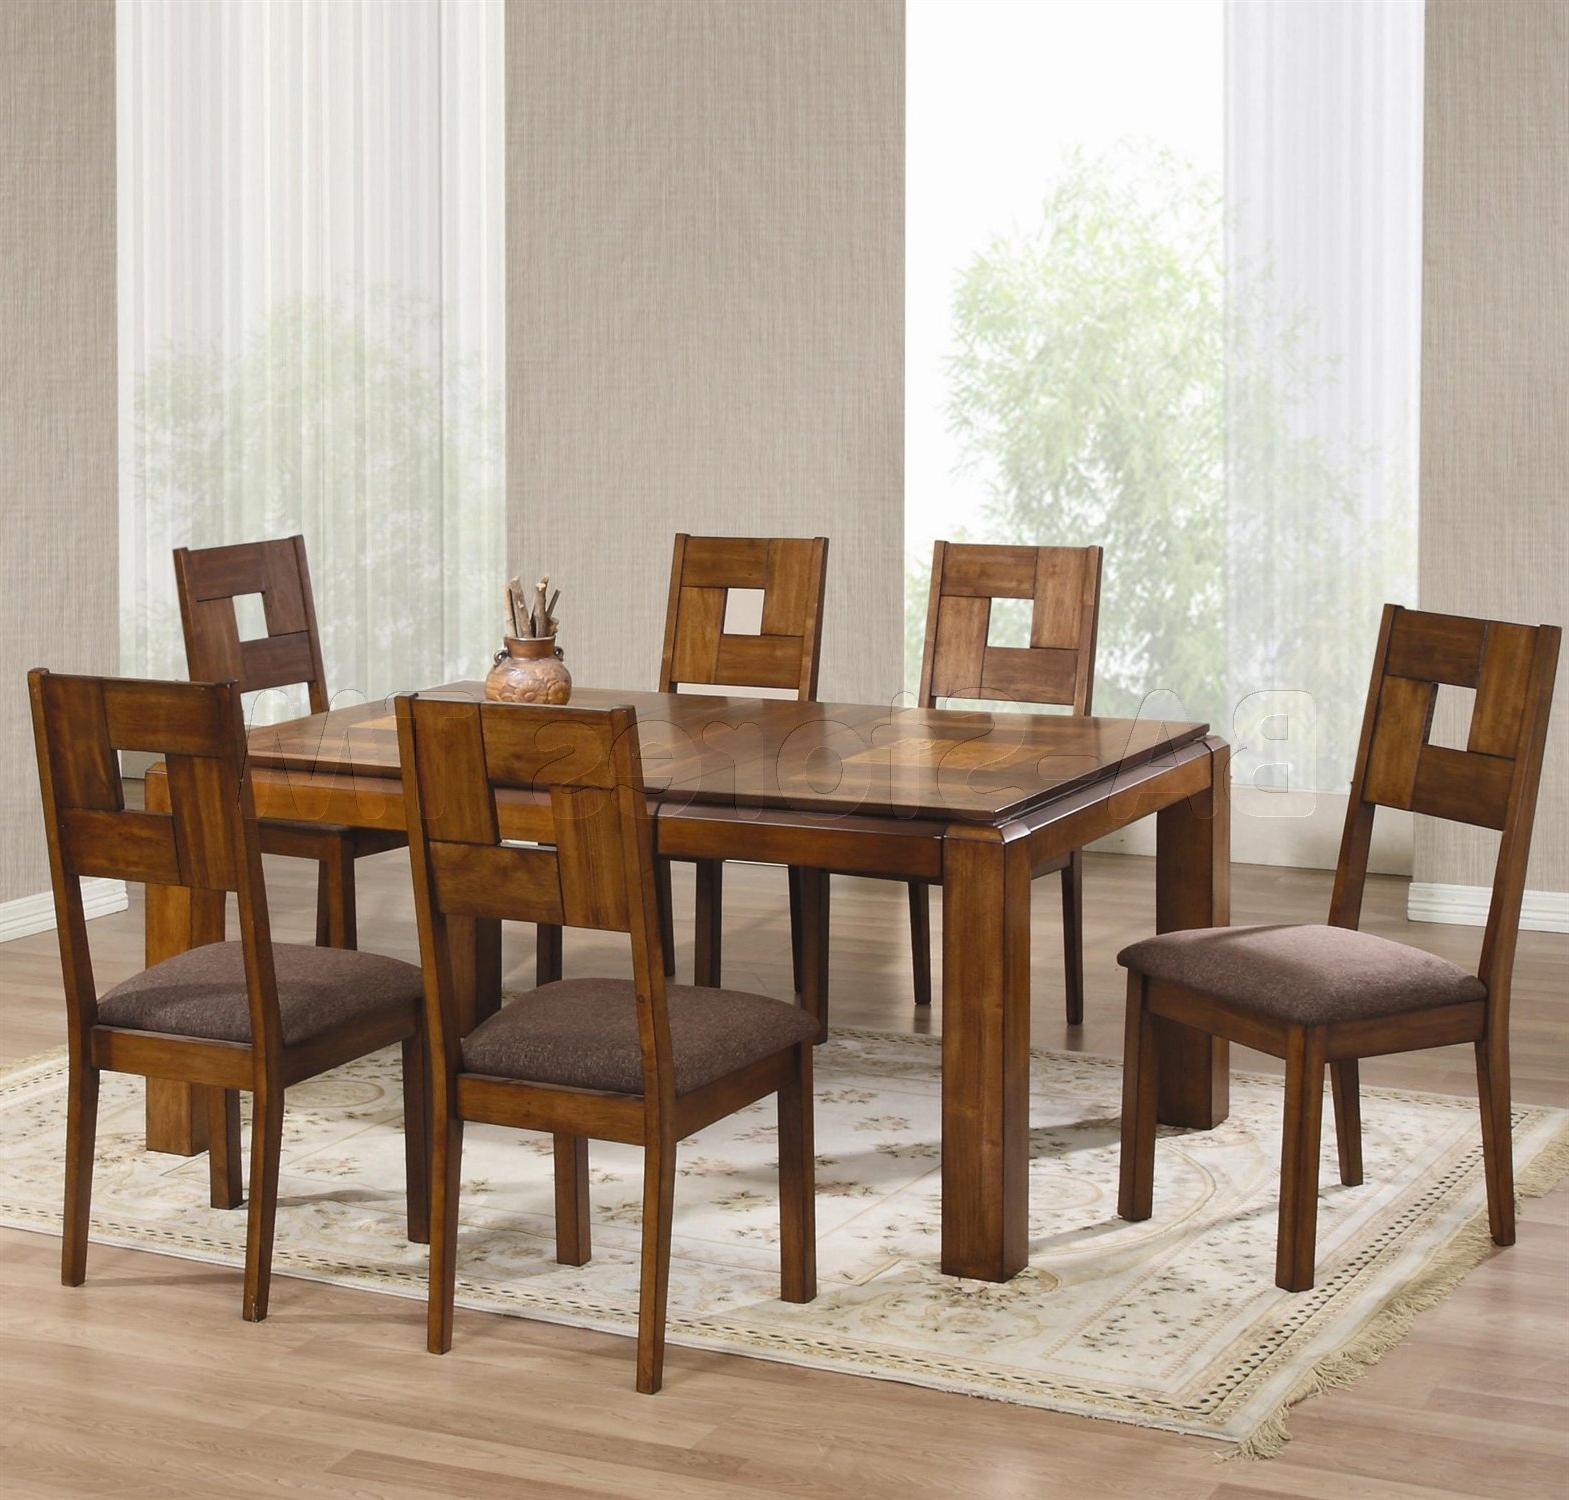 Widely Used 10 Chair Dining Room Set 10 Seat Dining Room Table And Chairs With Regard To Cheap Dining Tables And Chairs (View 25 of 25)